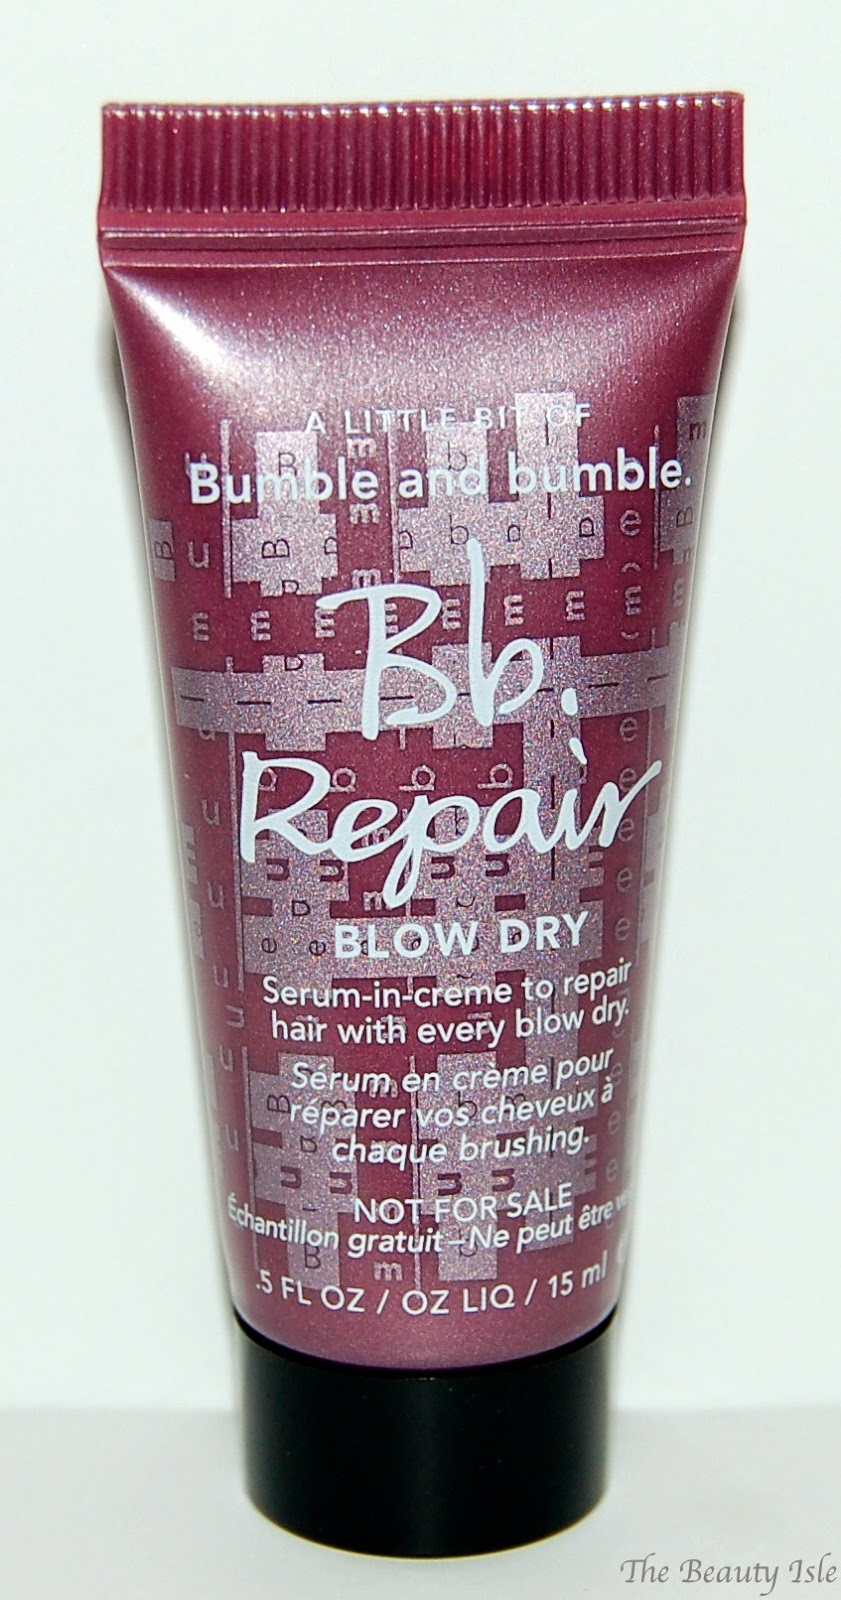 Bumble and Bumble BB Repair Blow Dry